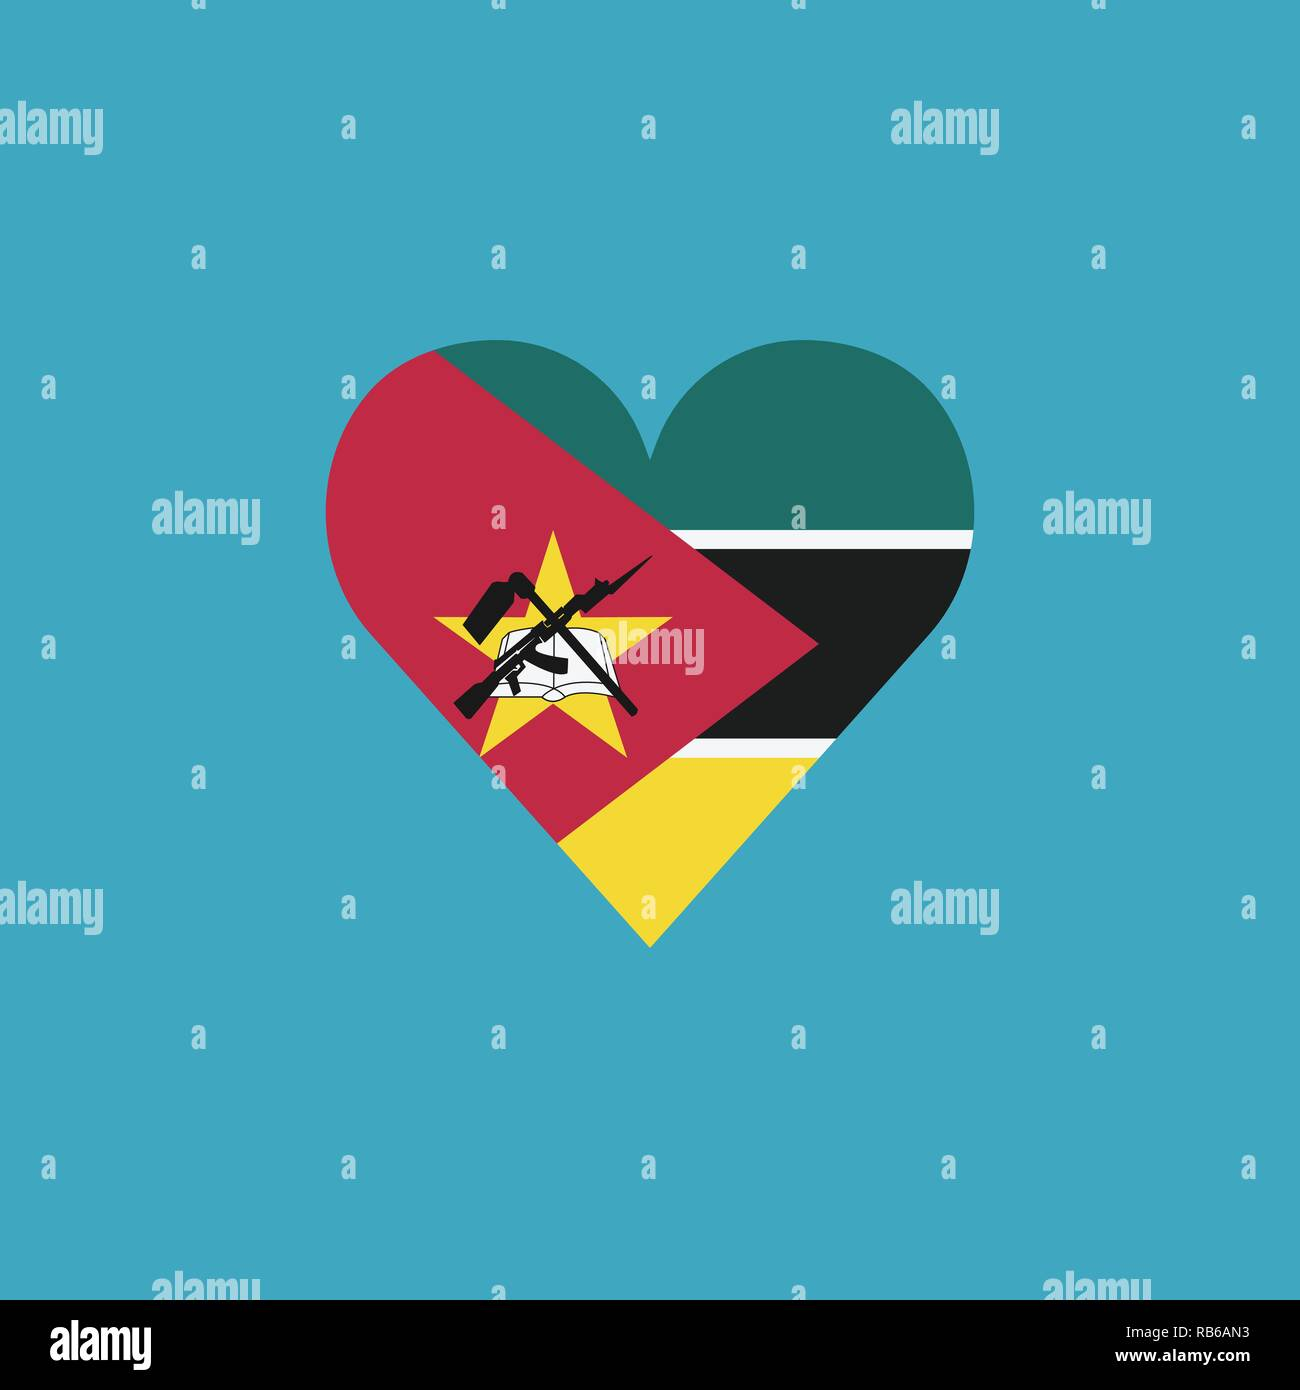 Mozambique flag icon in a heart shape in flat design